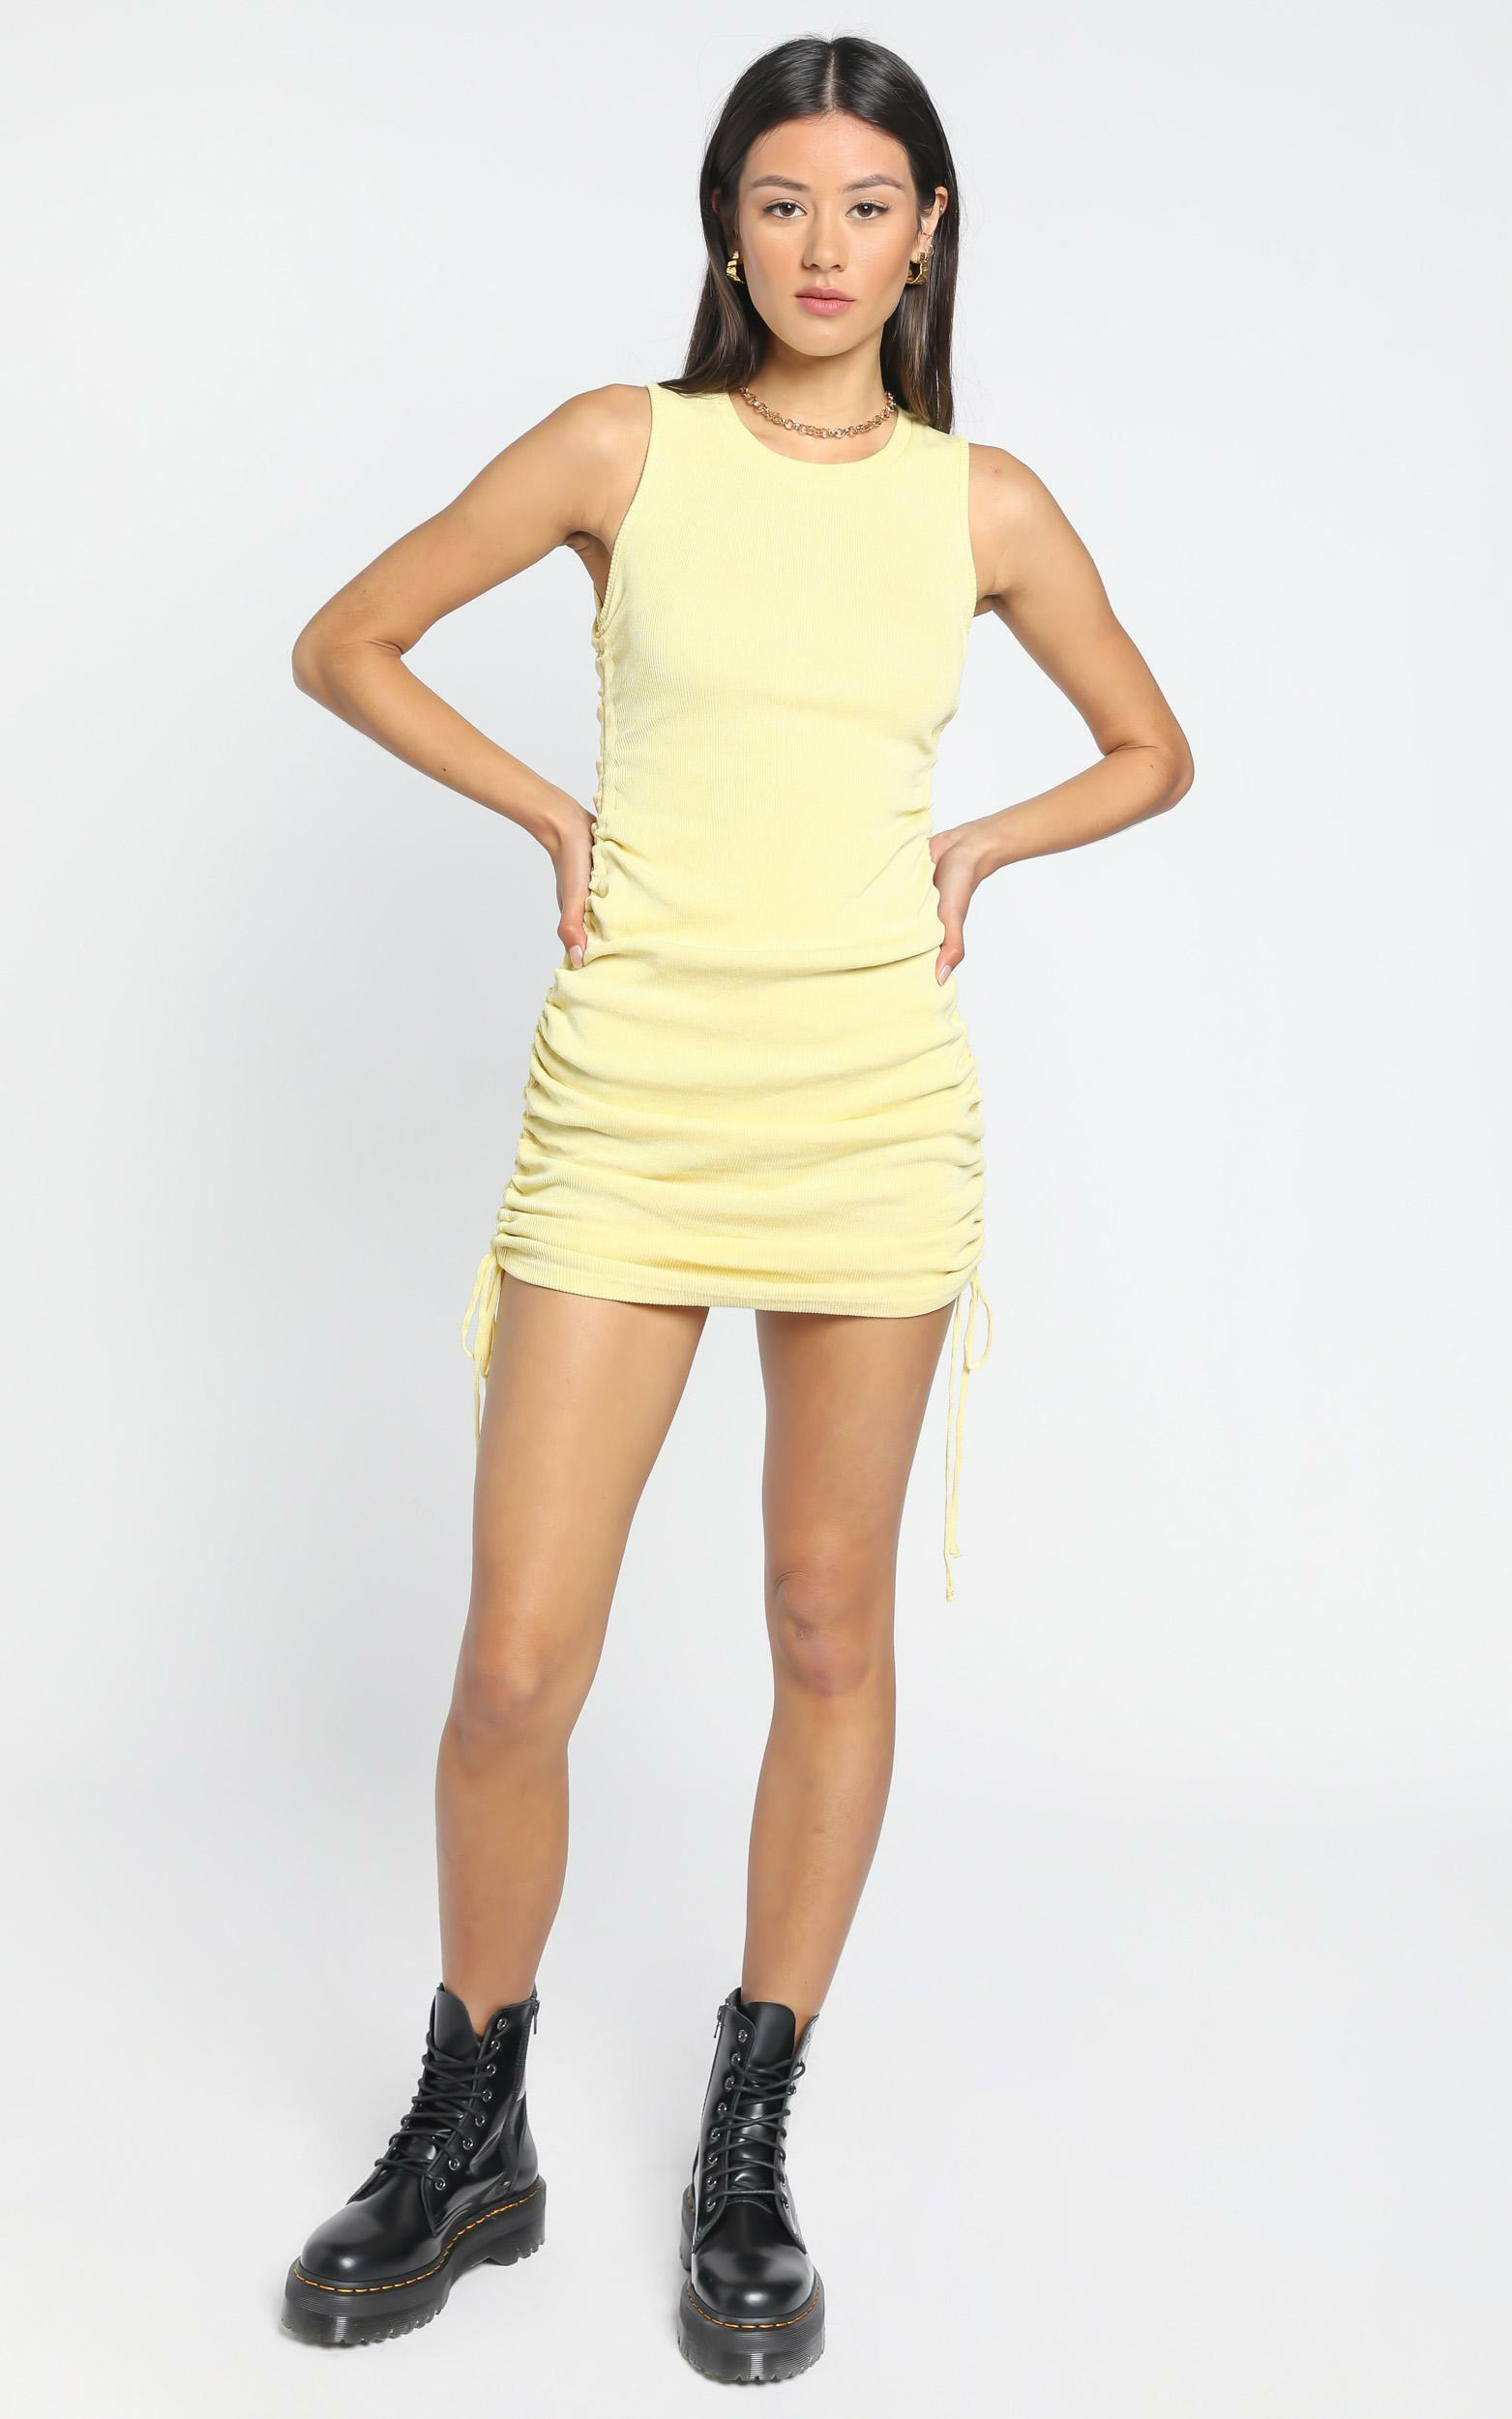 Lioness - Military Minds dress Mellow Yellow - 12 (L), Yellow, hi-res image number null